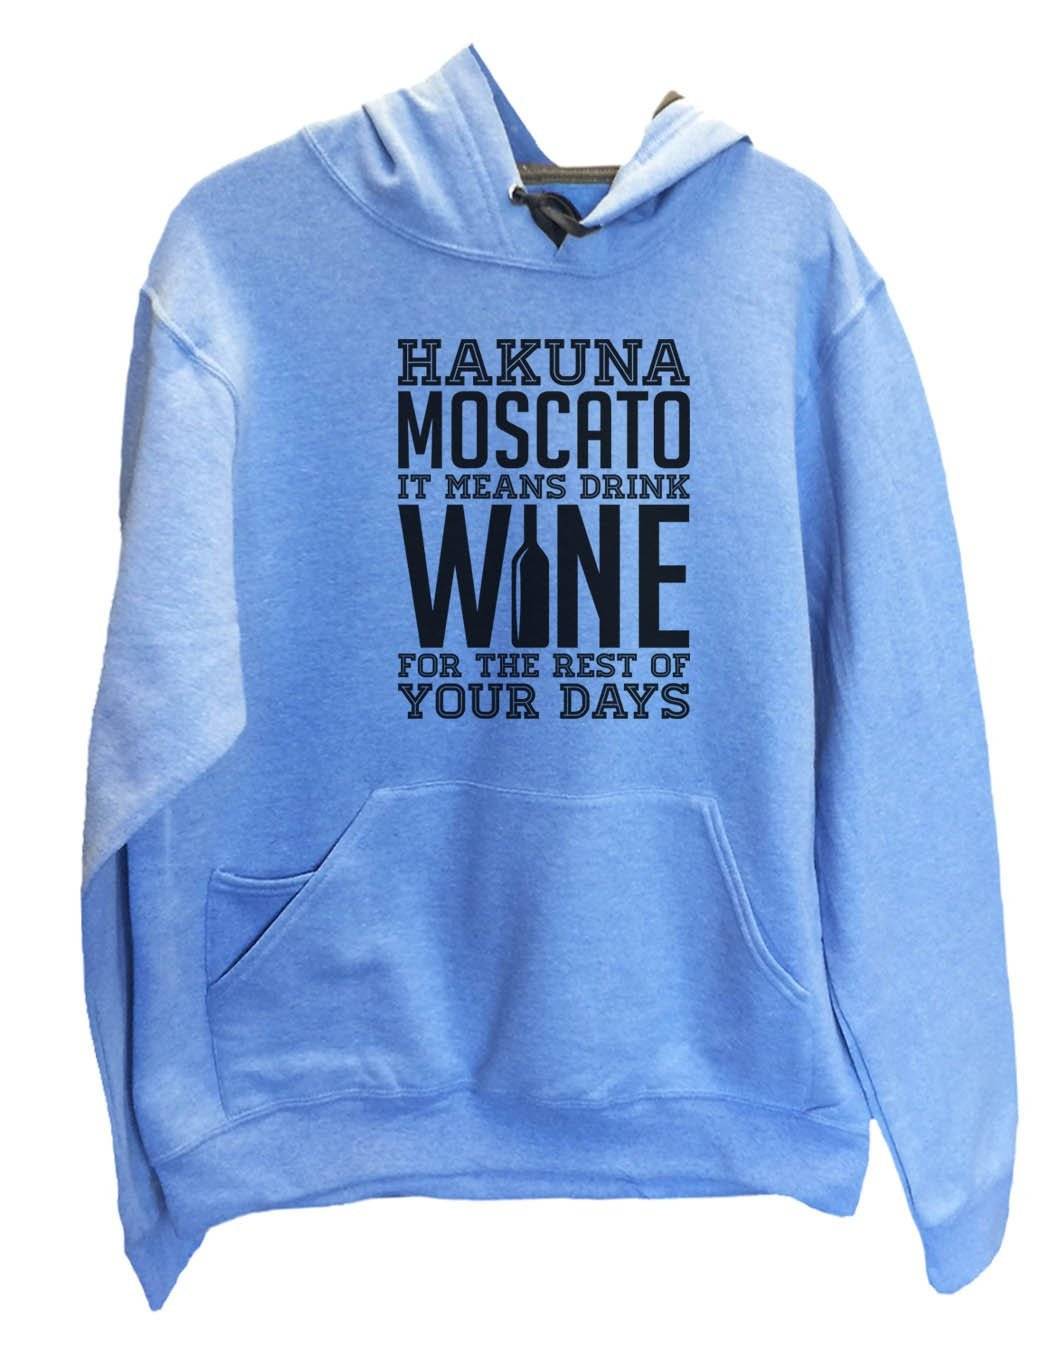 UNISEX HOODIE - Hakuna Moscato It Means Drink Wine For The Rest Of Your Days - FUNNY MENS AND WOMENS HOODED SWEATSHIRTS - 2166 Funny Shirt Small / North Carolina Blue